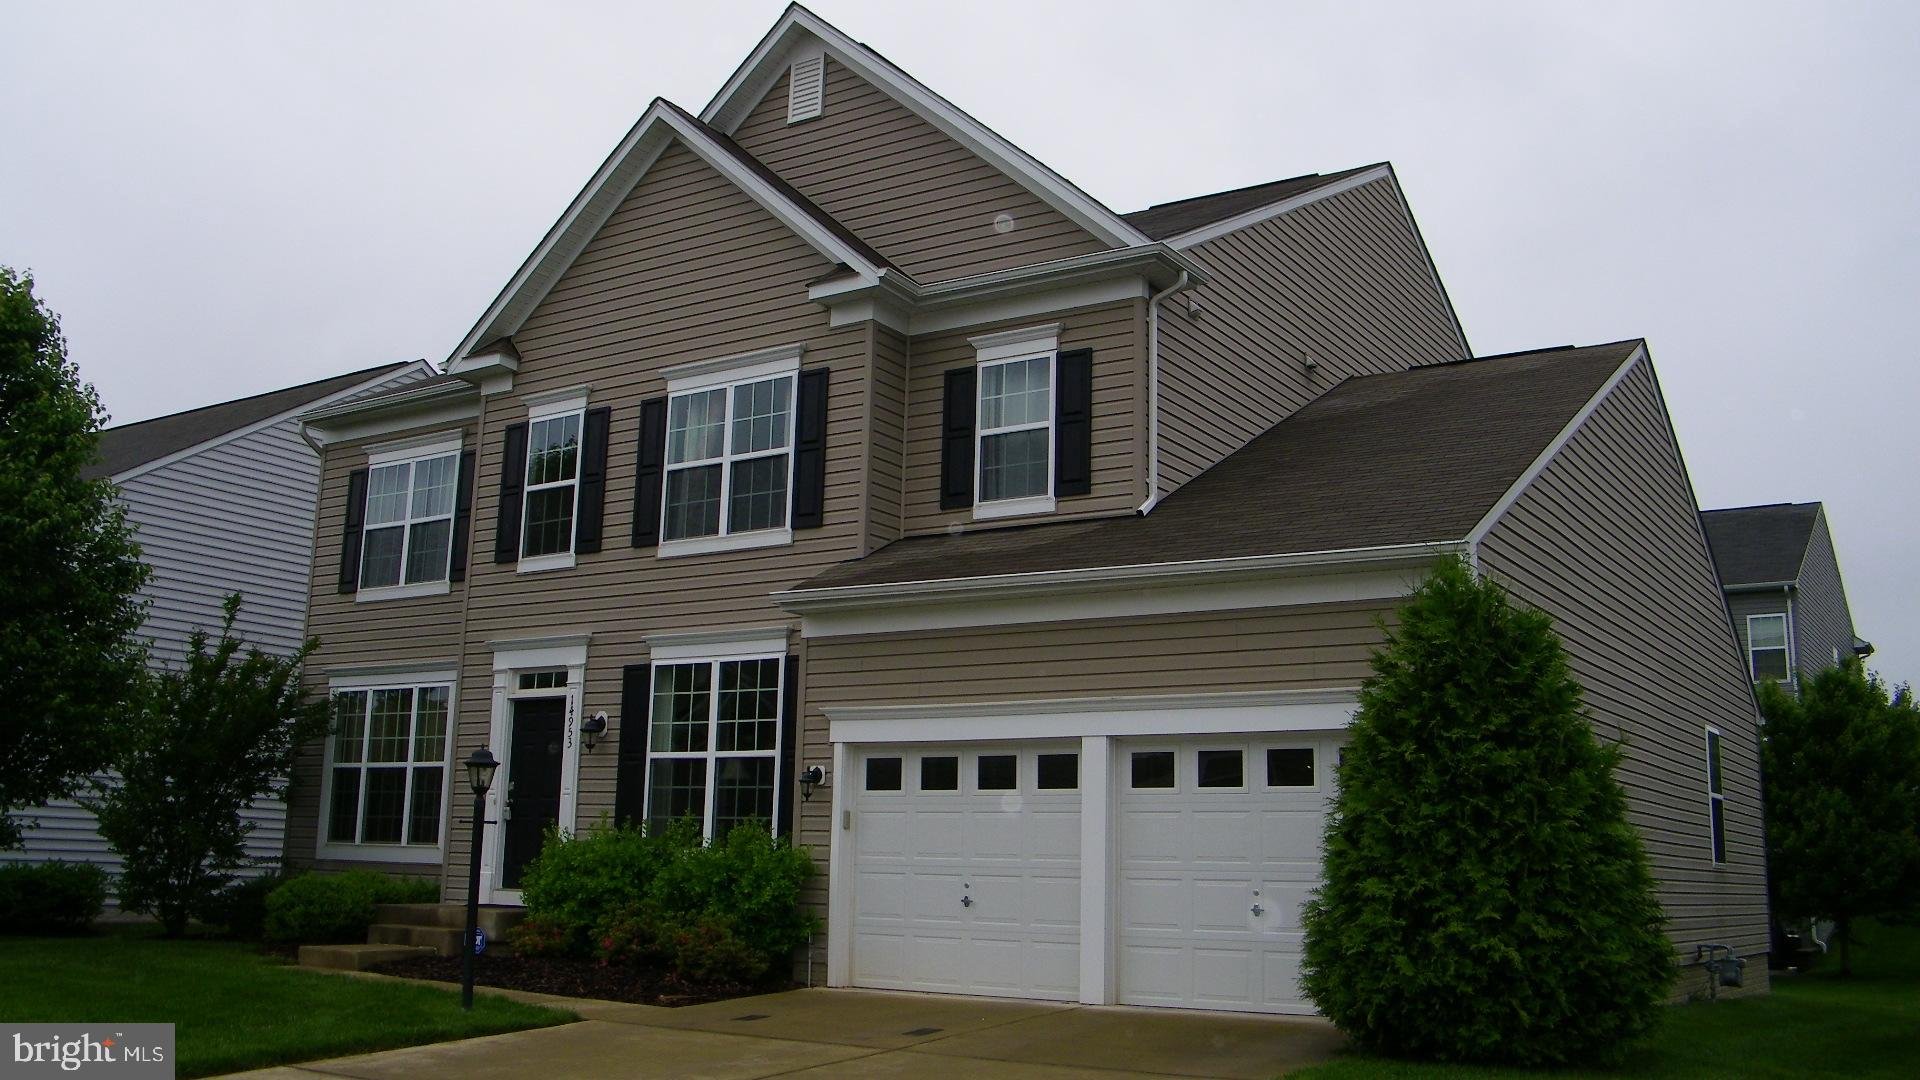 5 B/R!!MAIN LEVEL B/R WITH ATTACHED FULL BATH !4 SPACIOUS BEDROOMS UPPER LEVEL & LIBRARY ON MAIN LEVEL ! GOURMET KITCHEN WITH CENTER ISLAND, GRANITE & UPGRADED CABINETS !UPGRADED HARDWOODS ON MAIN LEVEL ! LARGE FAMILY ROOM OF THE KITCHEN!WALK-IN CLOSETS IN BR'S, UPSTAIRS LAUNDRY! WALK UP BASEMENT!